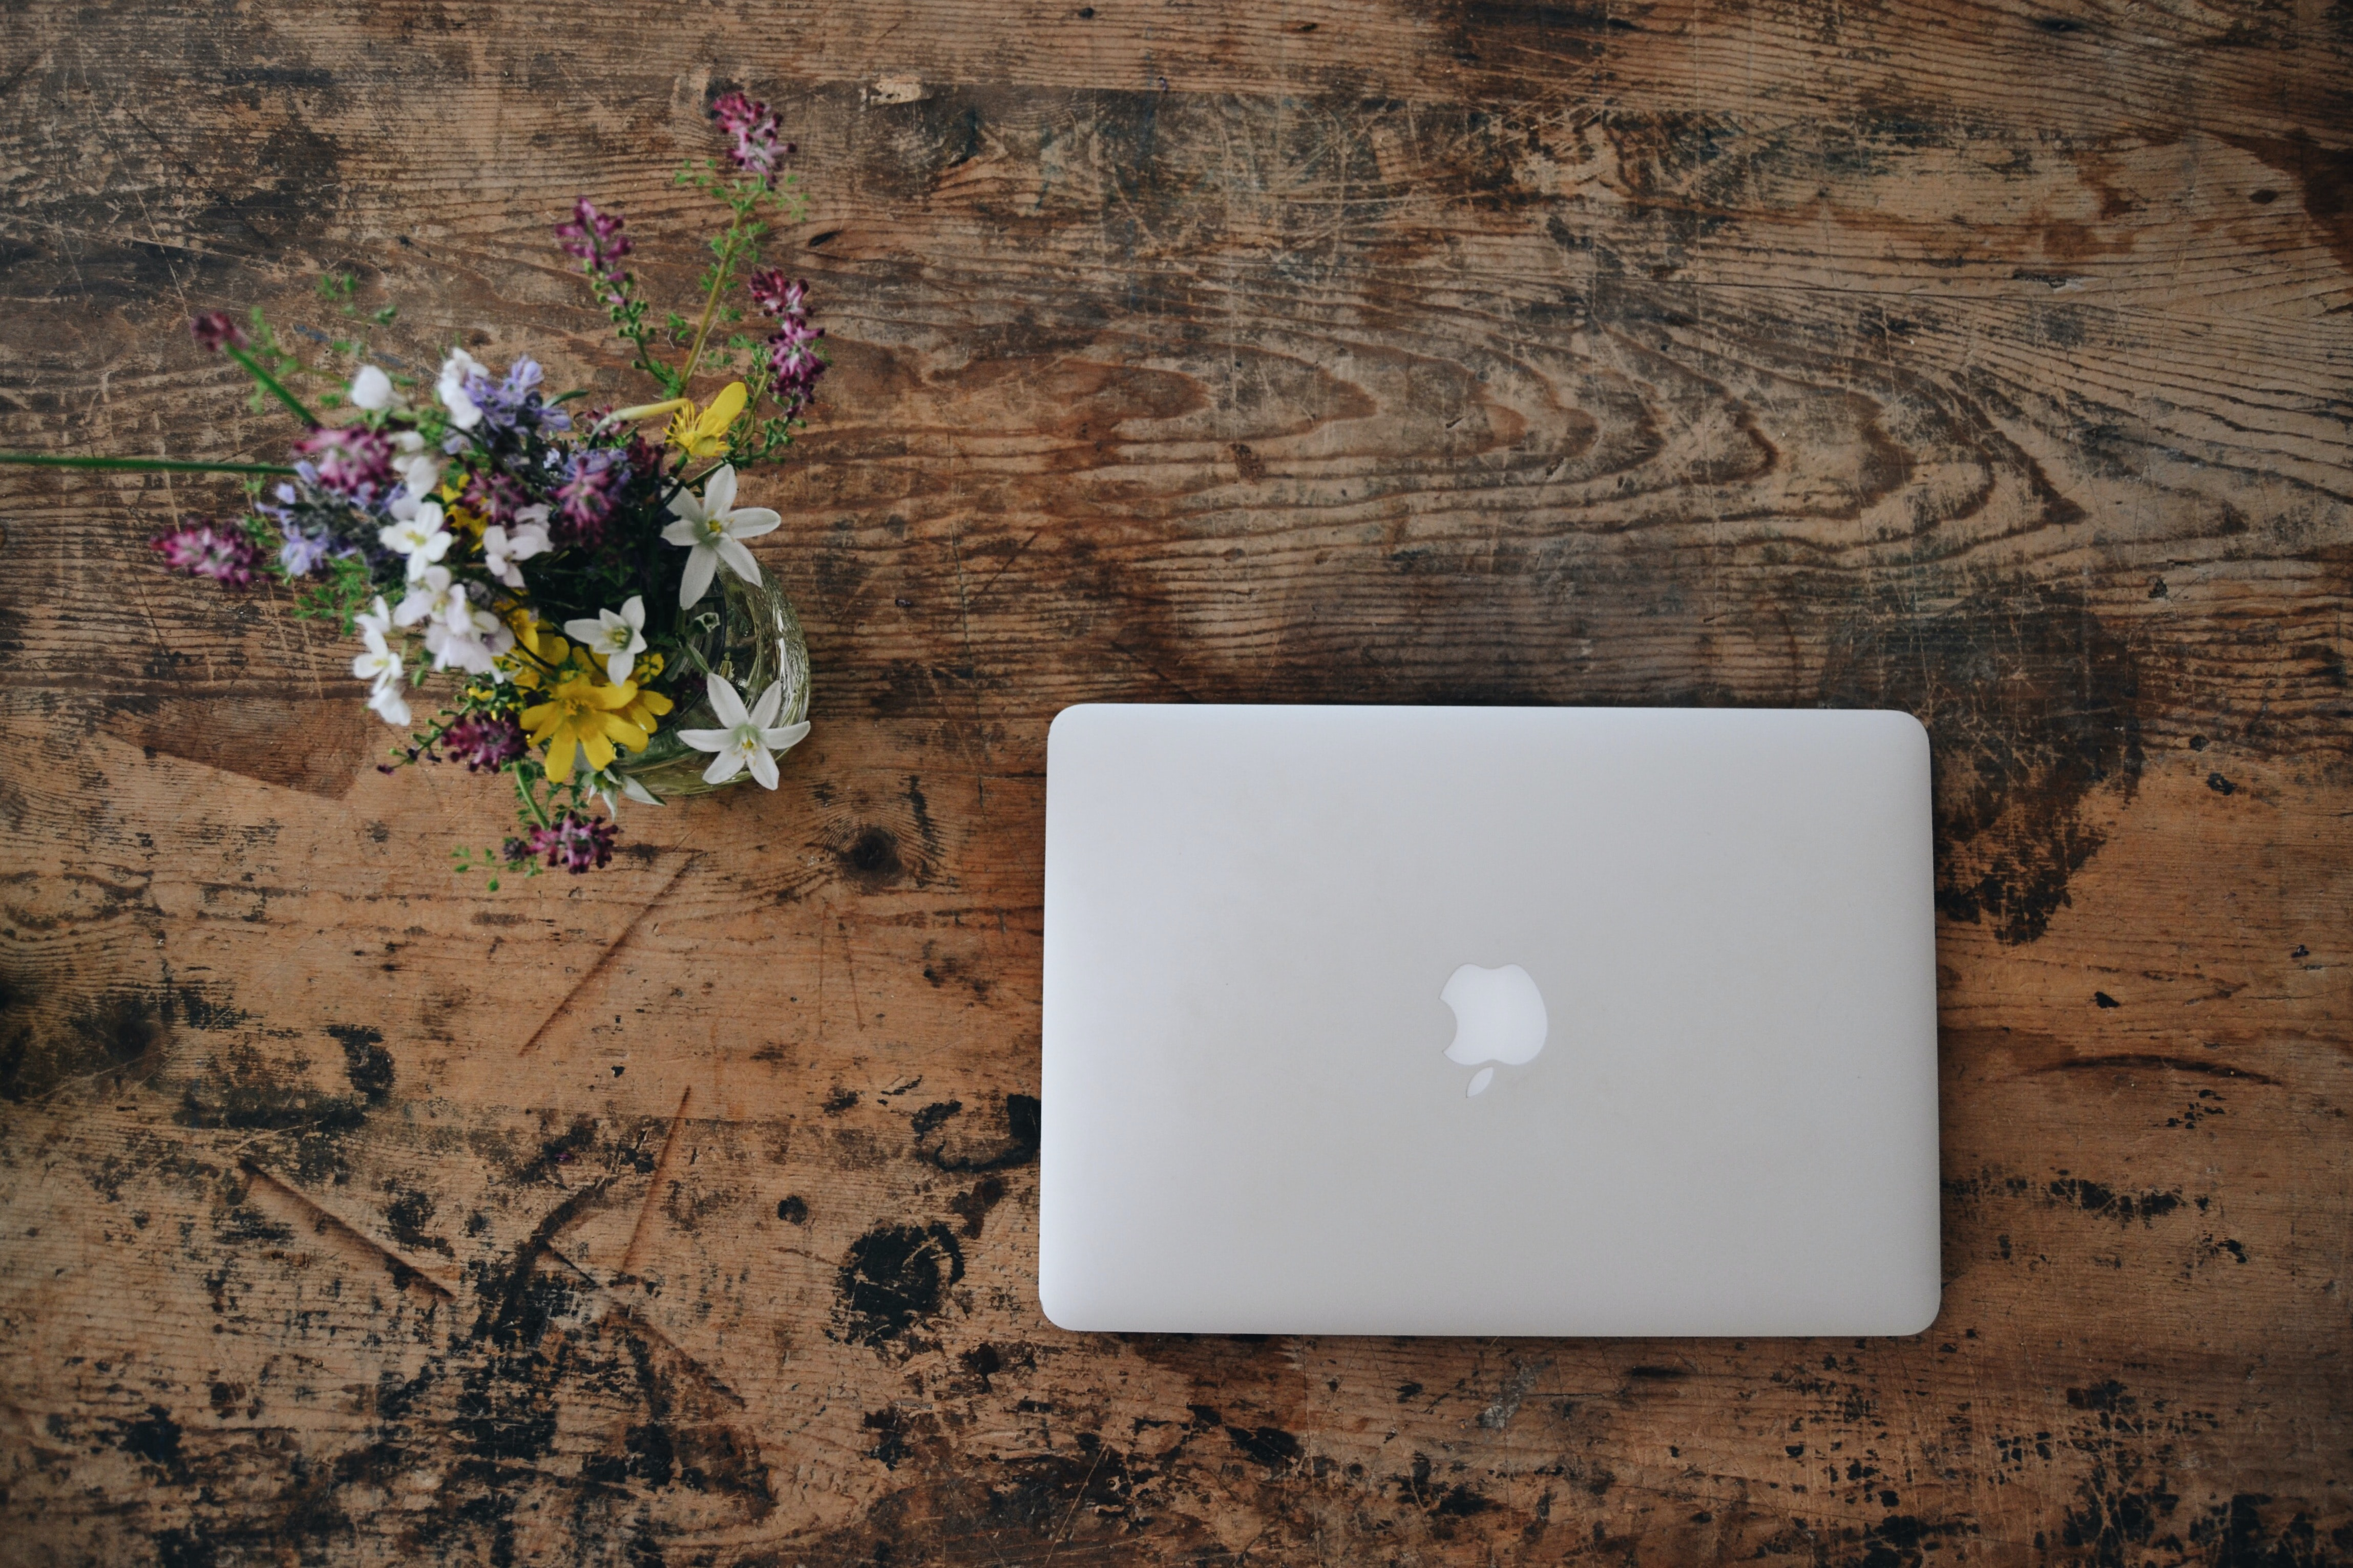 white MacBook on brown wooden surface